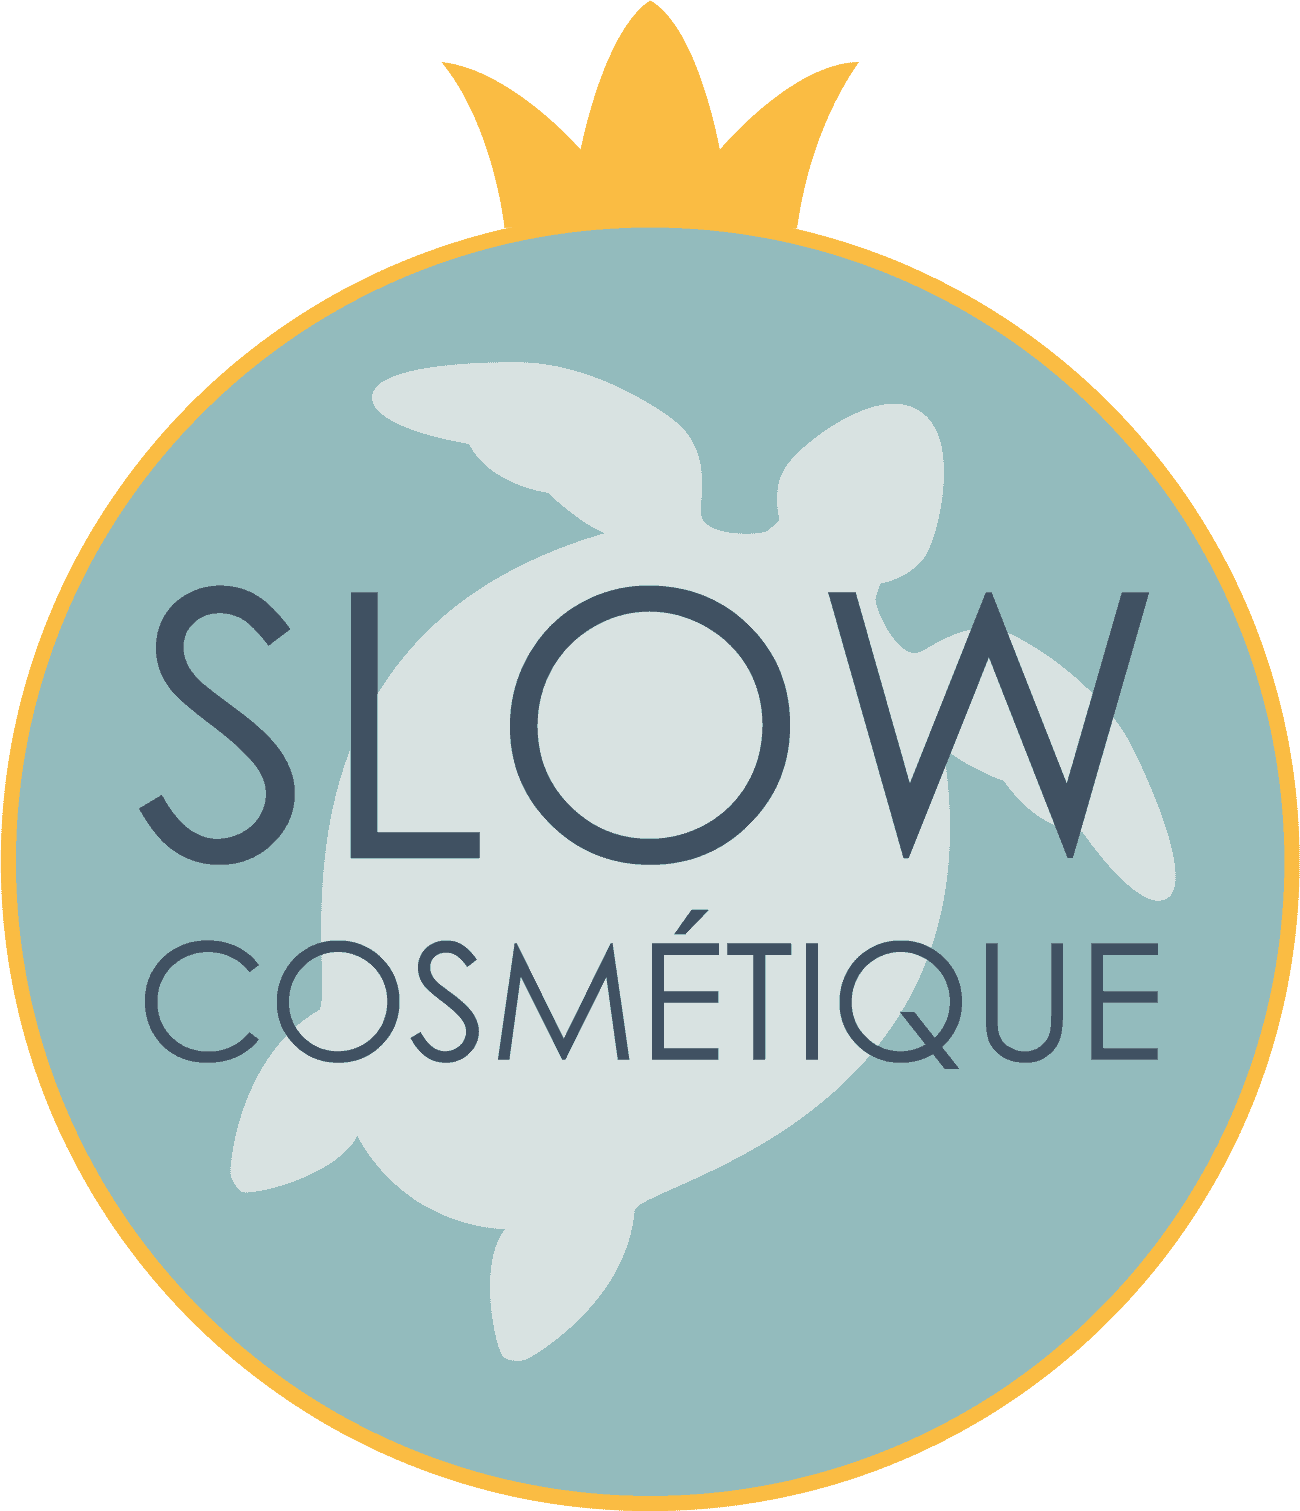 logo_slowcosmetique_web_2.png